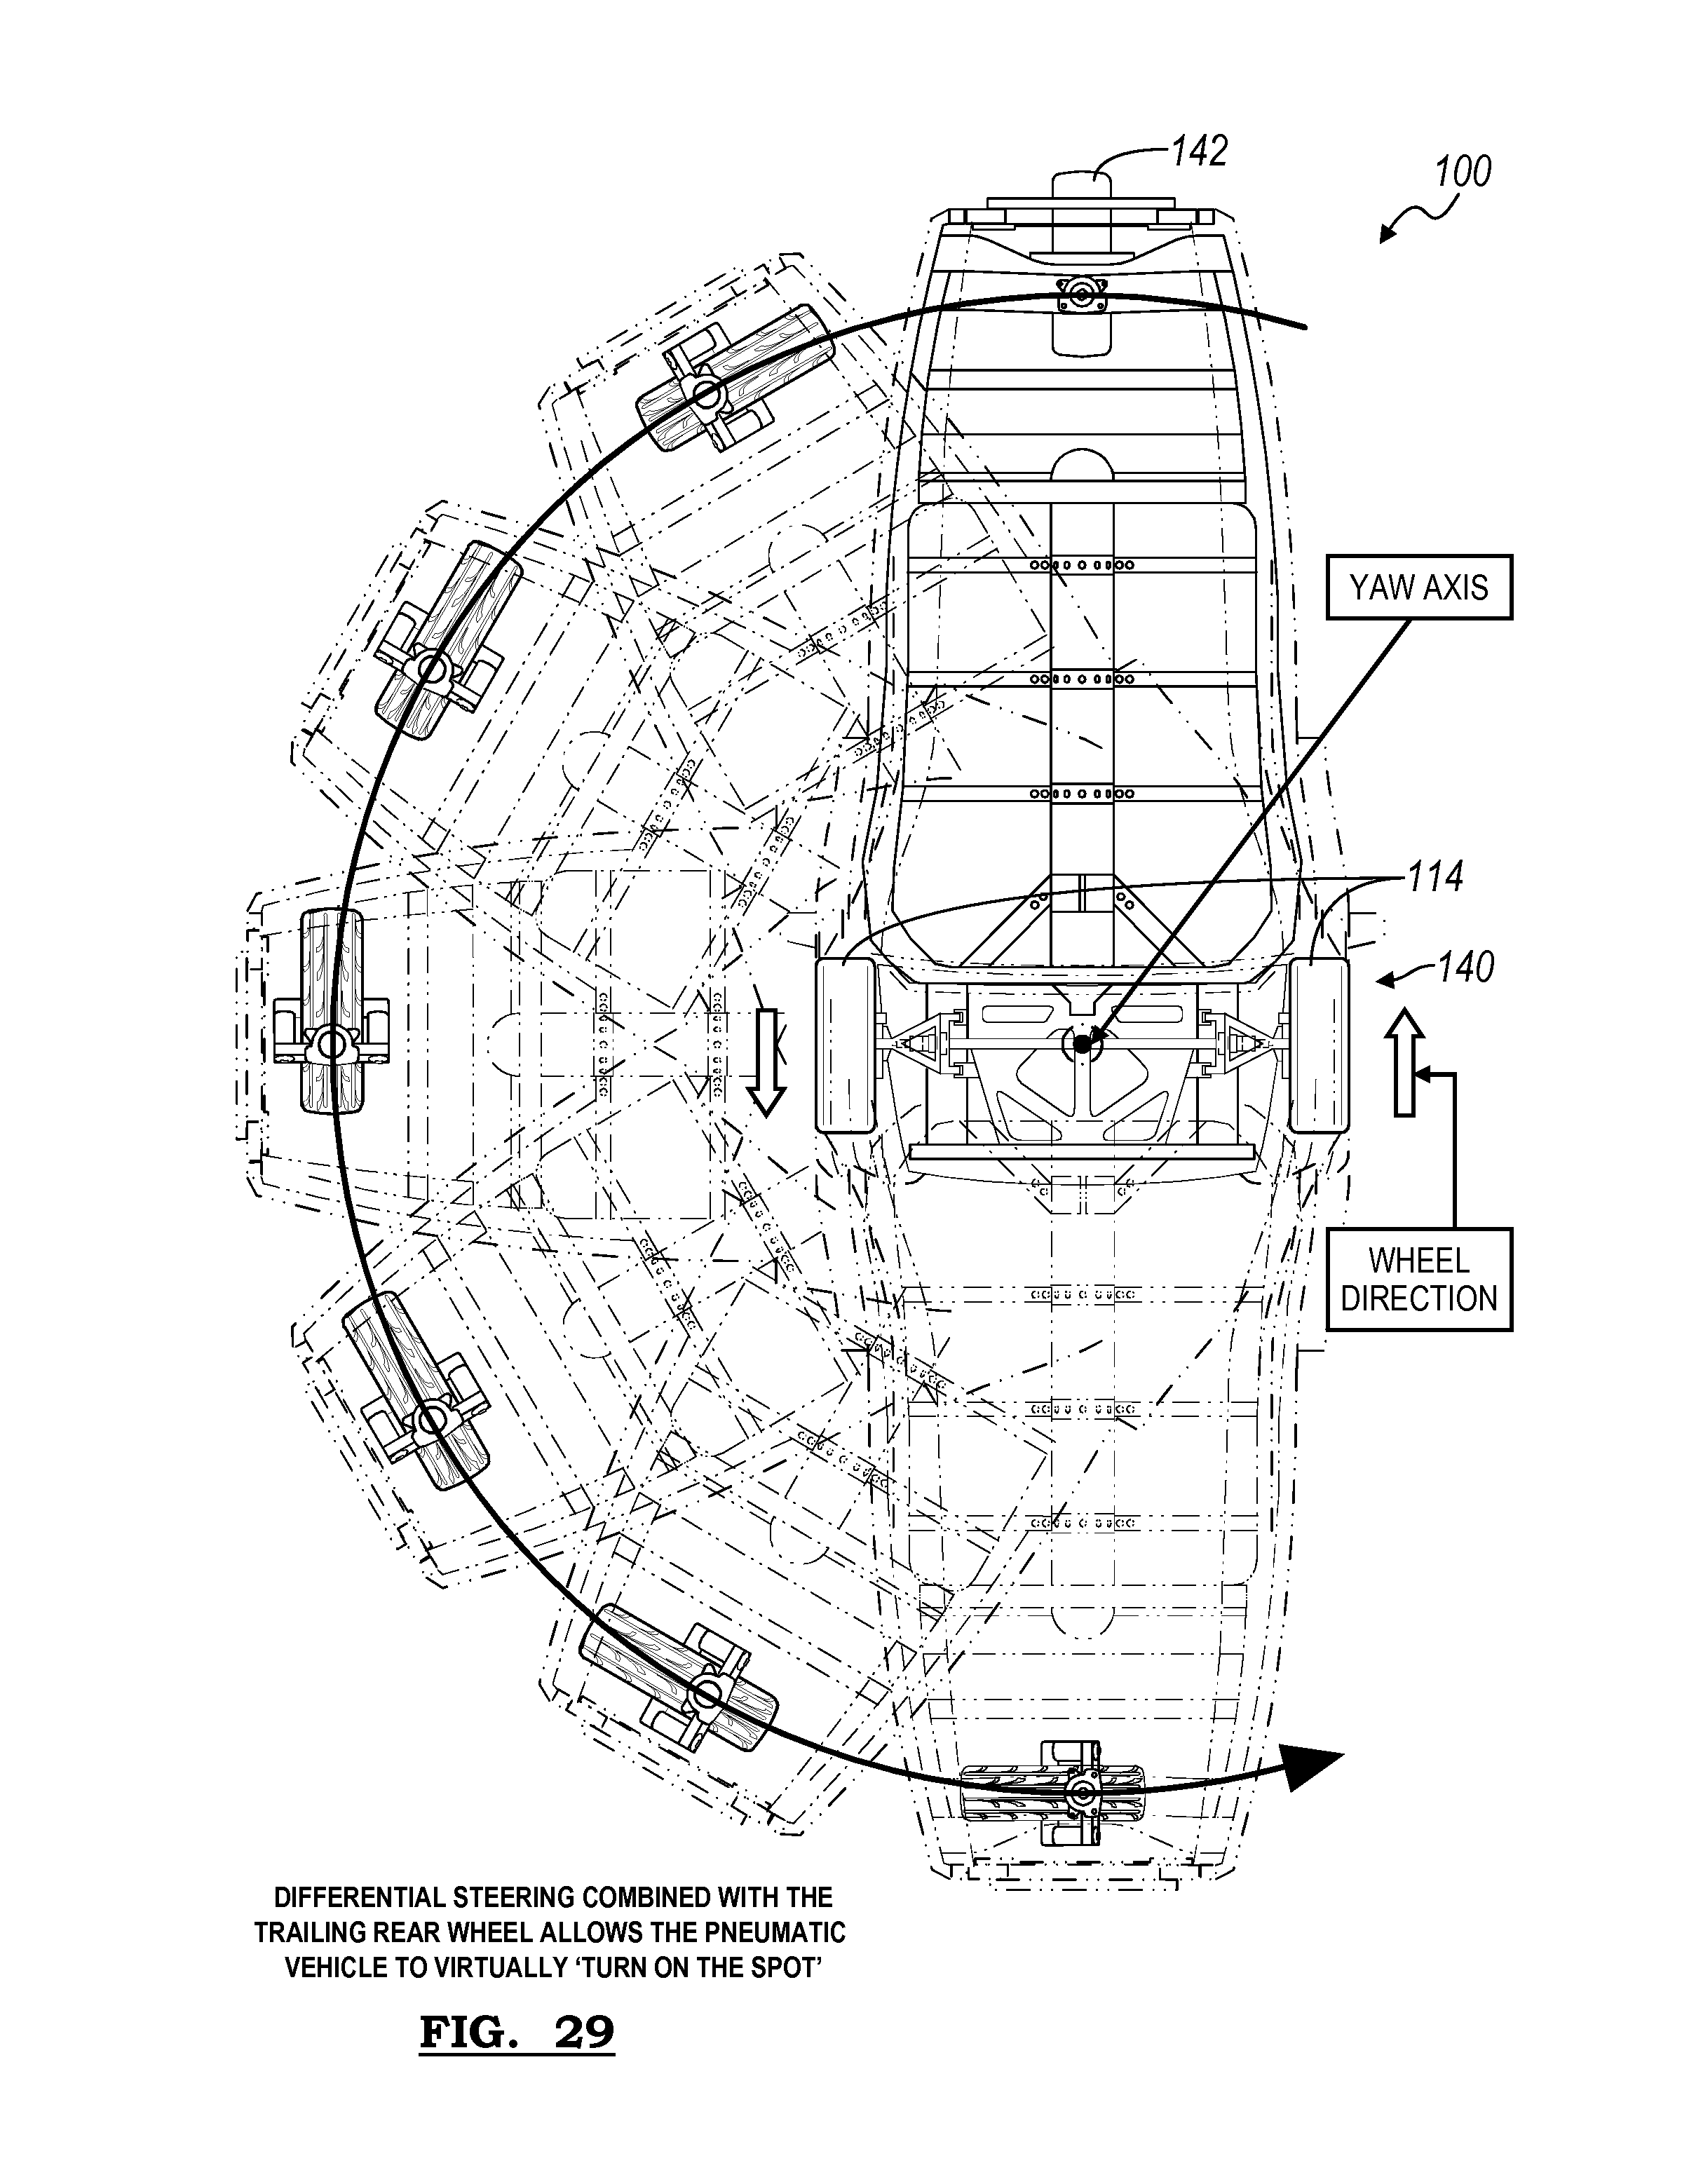 patente us20100078245 chassis for pneumatic vehicle Contactor Wiring Diagram patent drawing